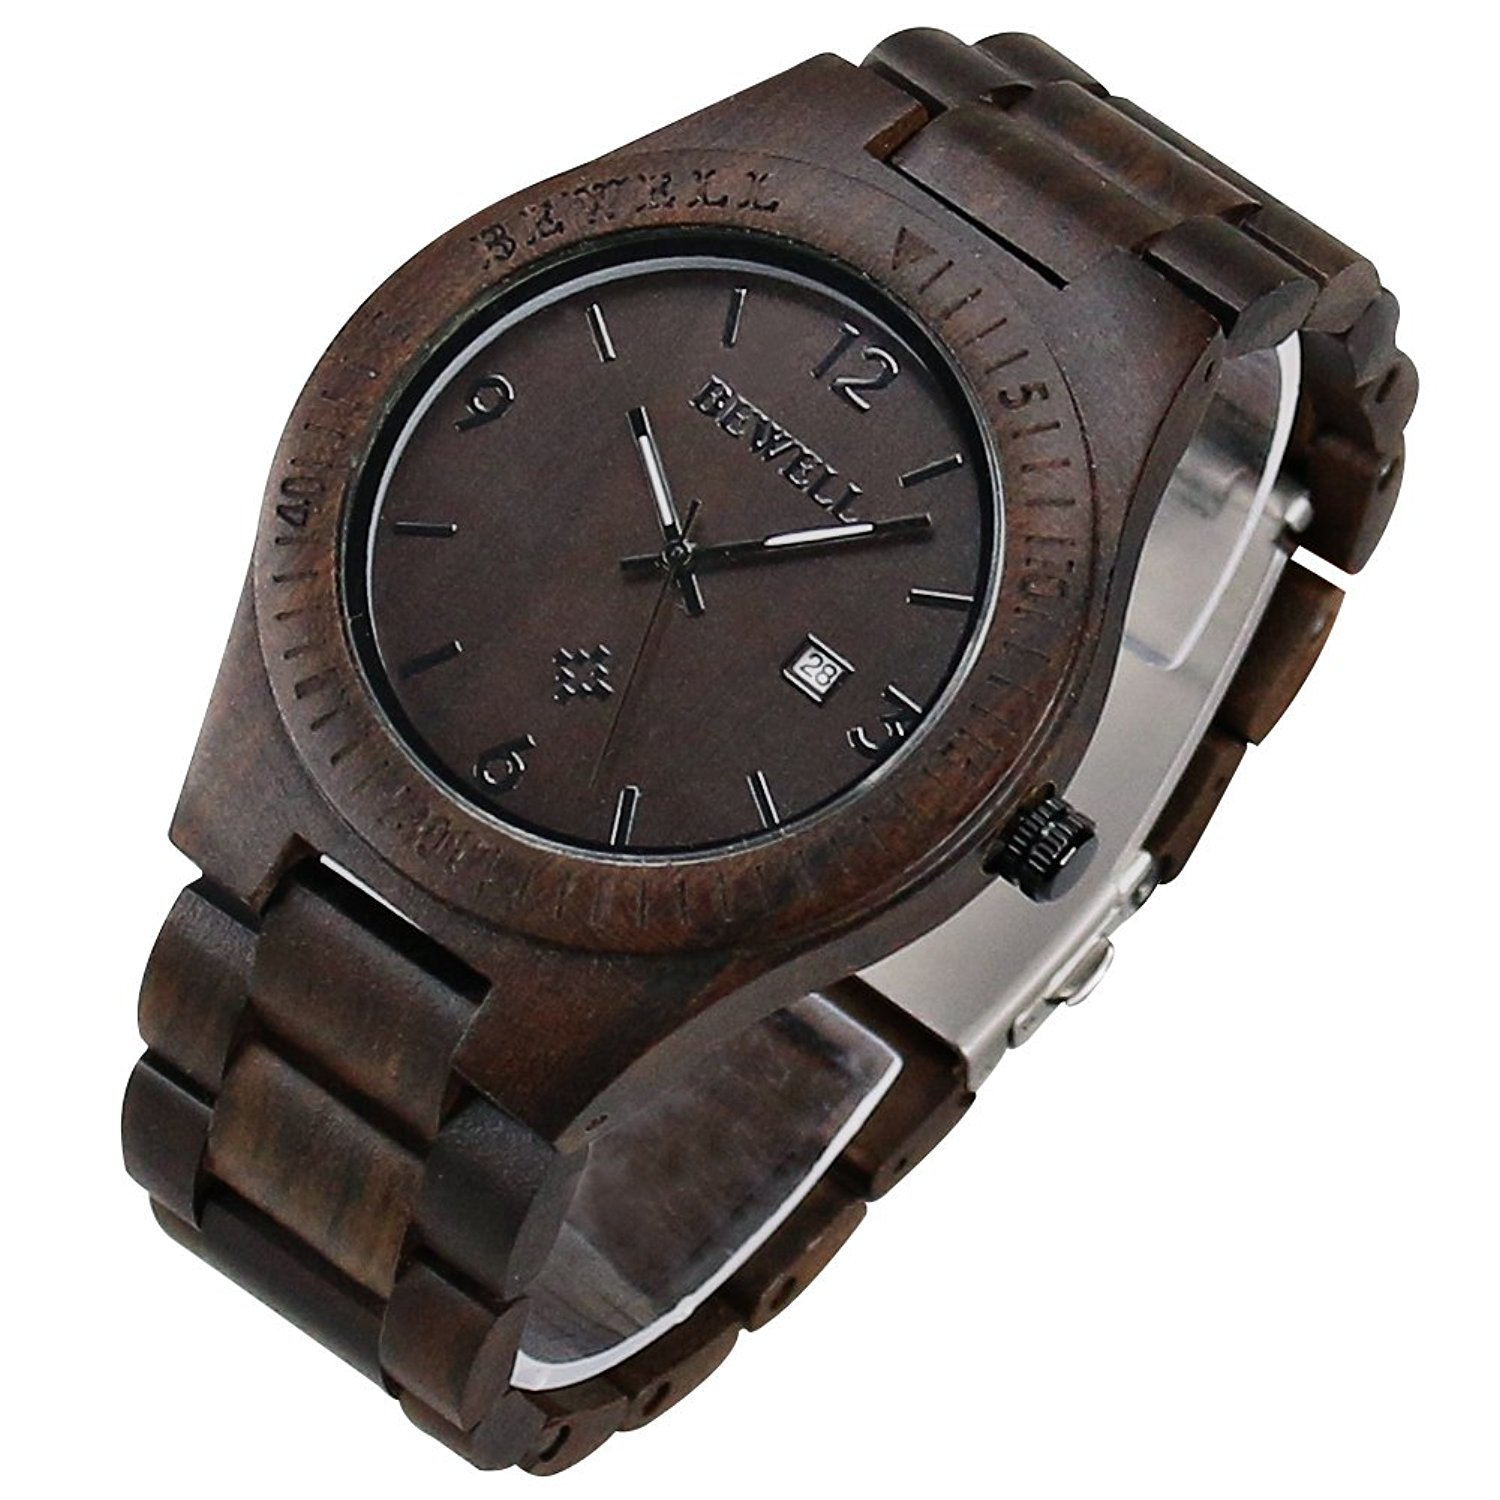 wood watches ladies luxury men montre mens femme hours image product dress sandalwood wristwatch mozun watch innovative products quartz women